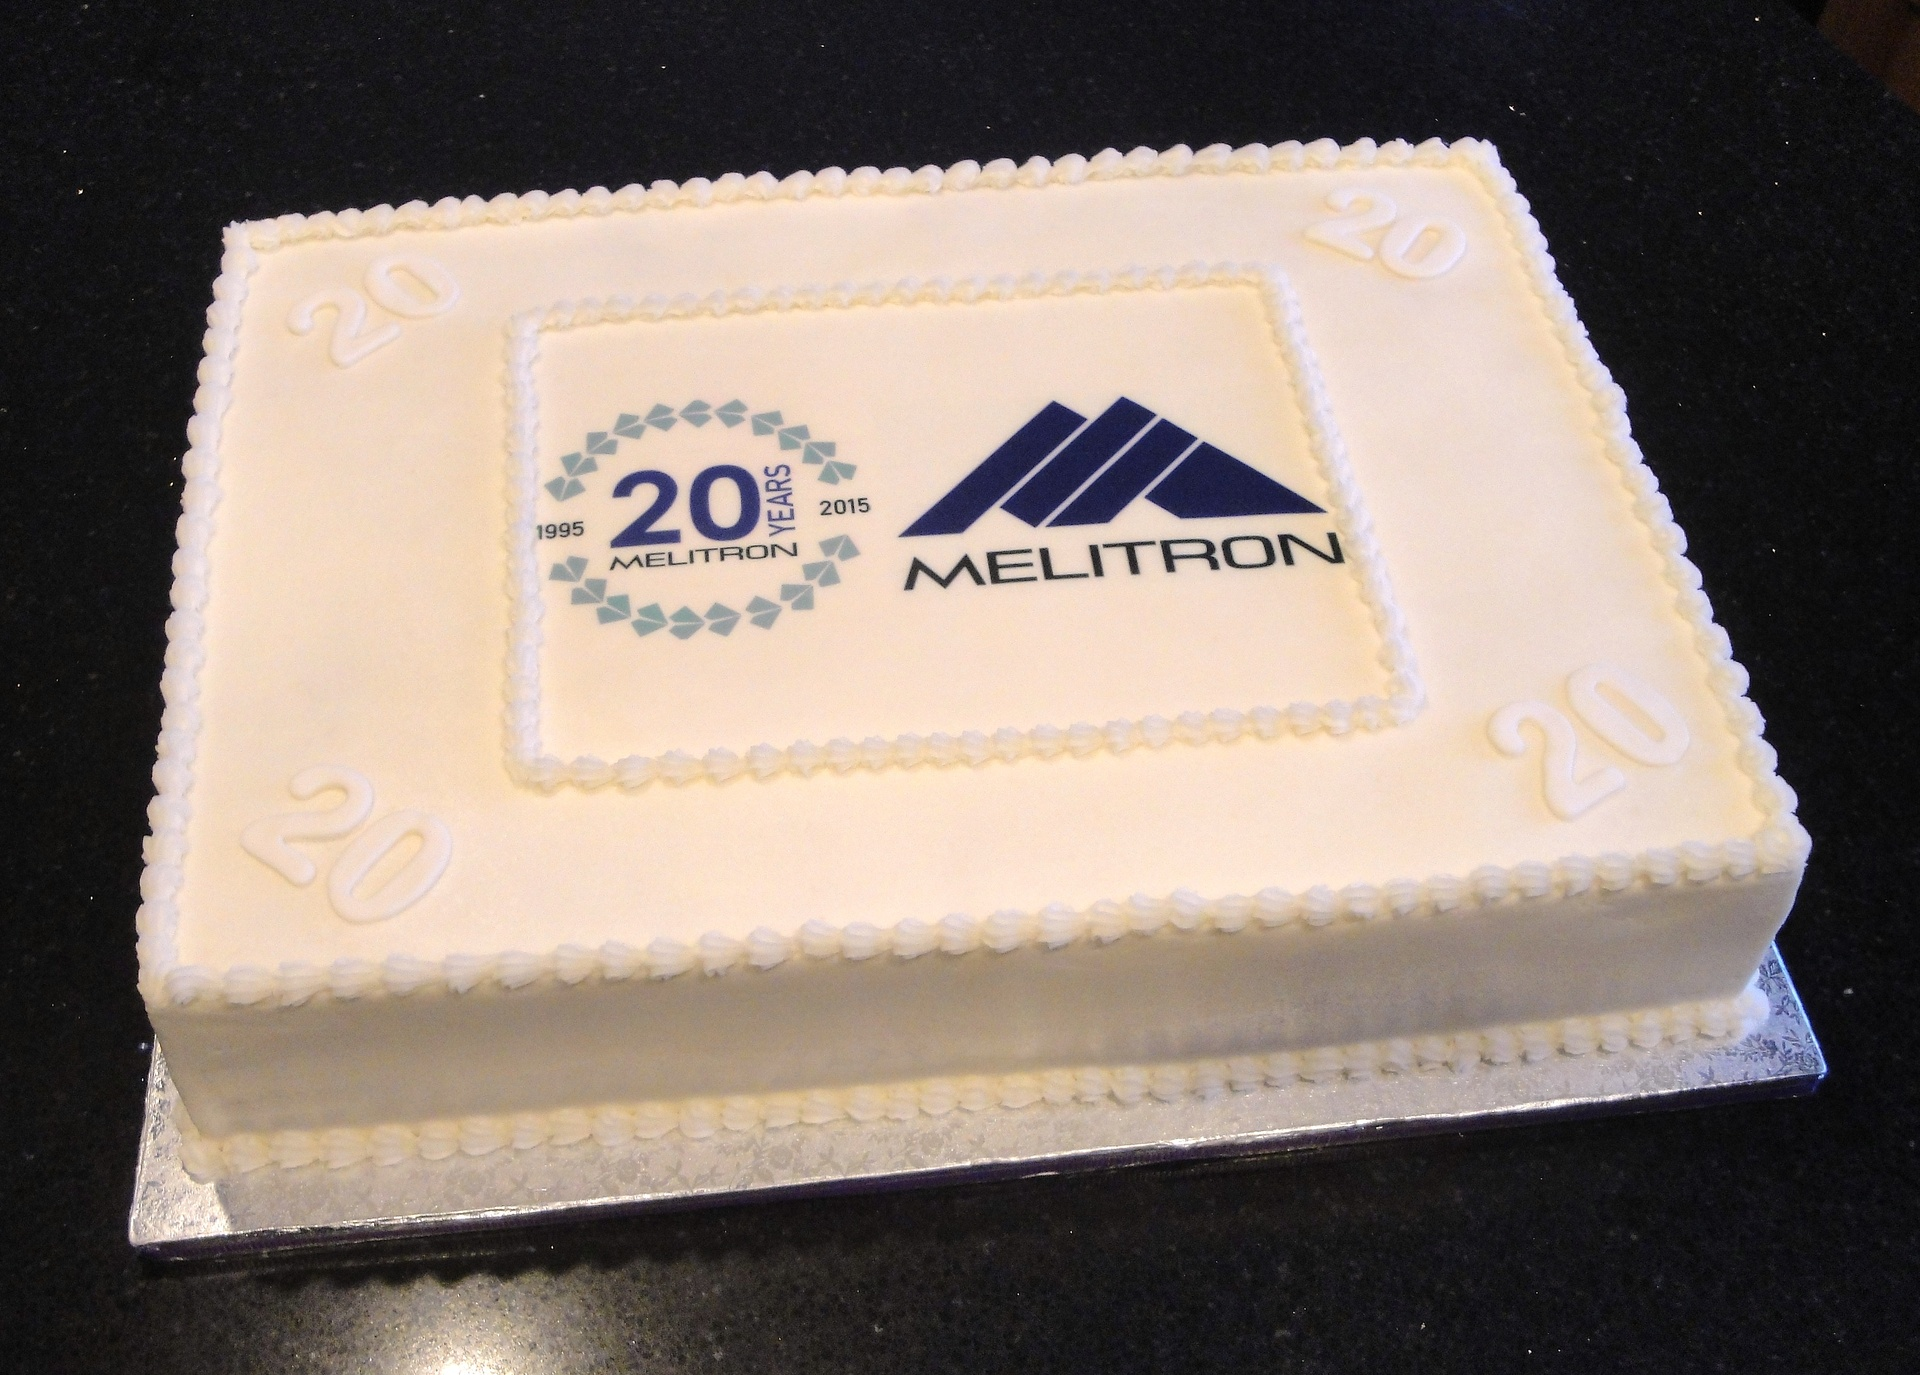 Melitron 20th Year Anniversary Cake